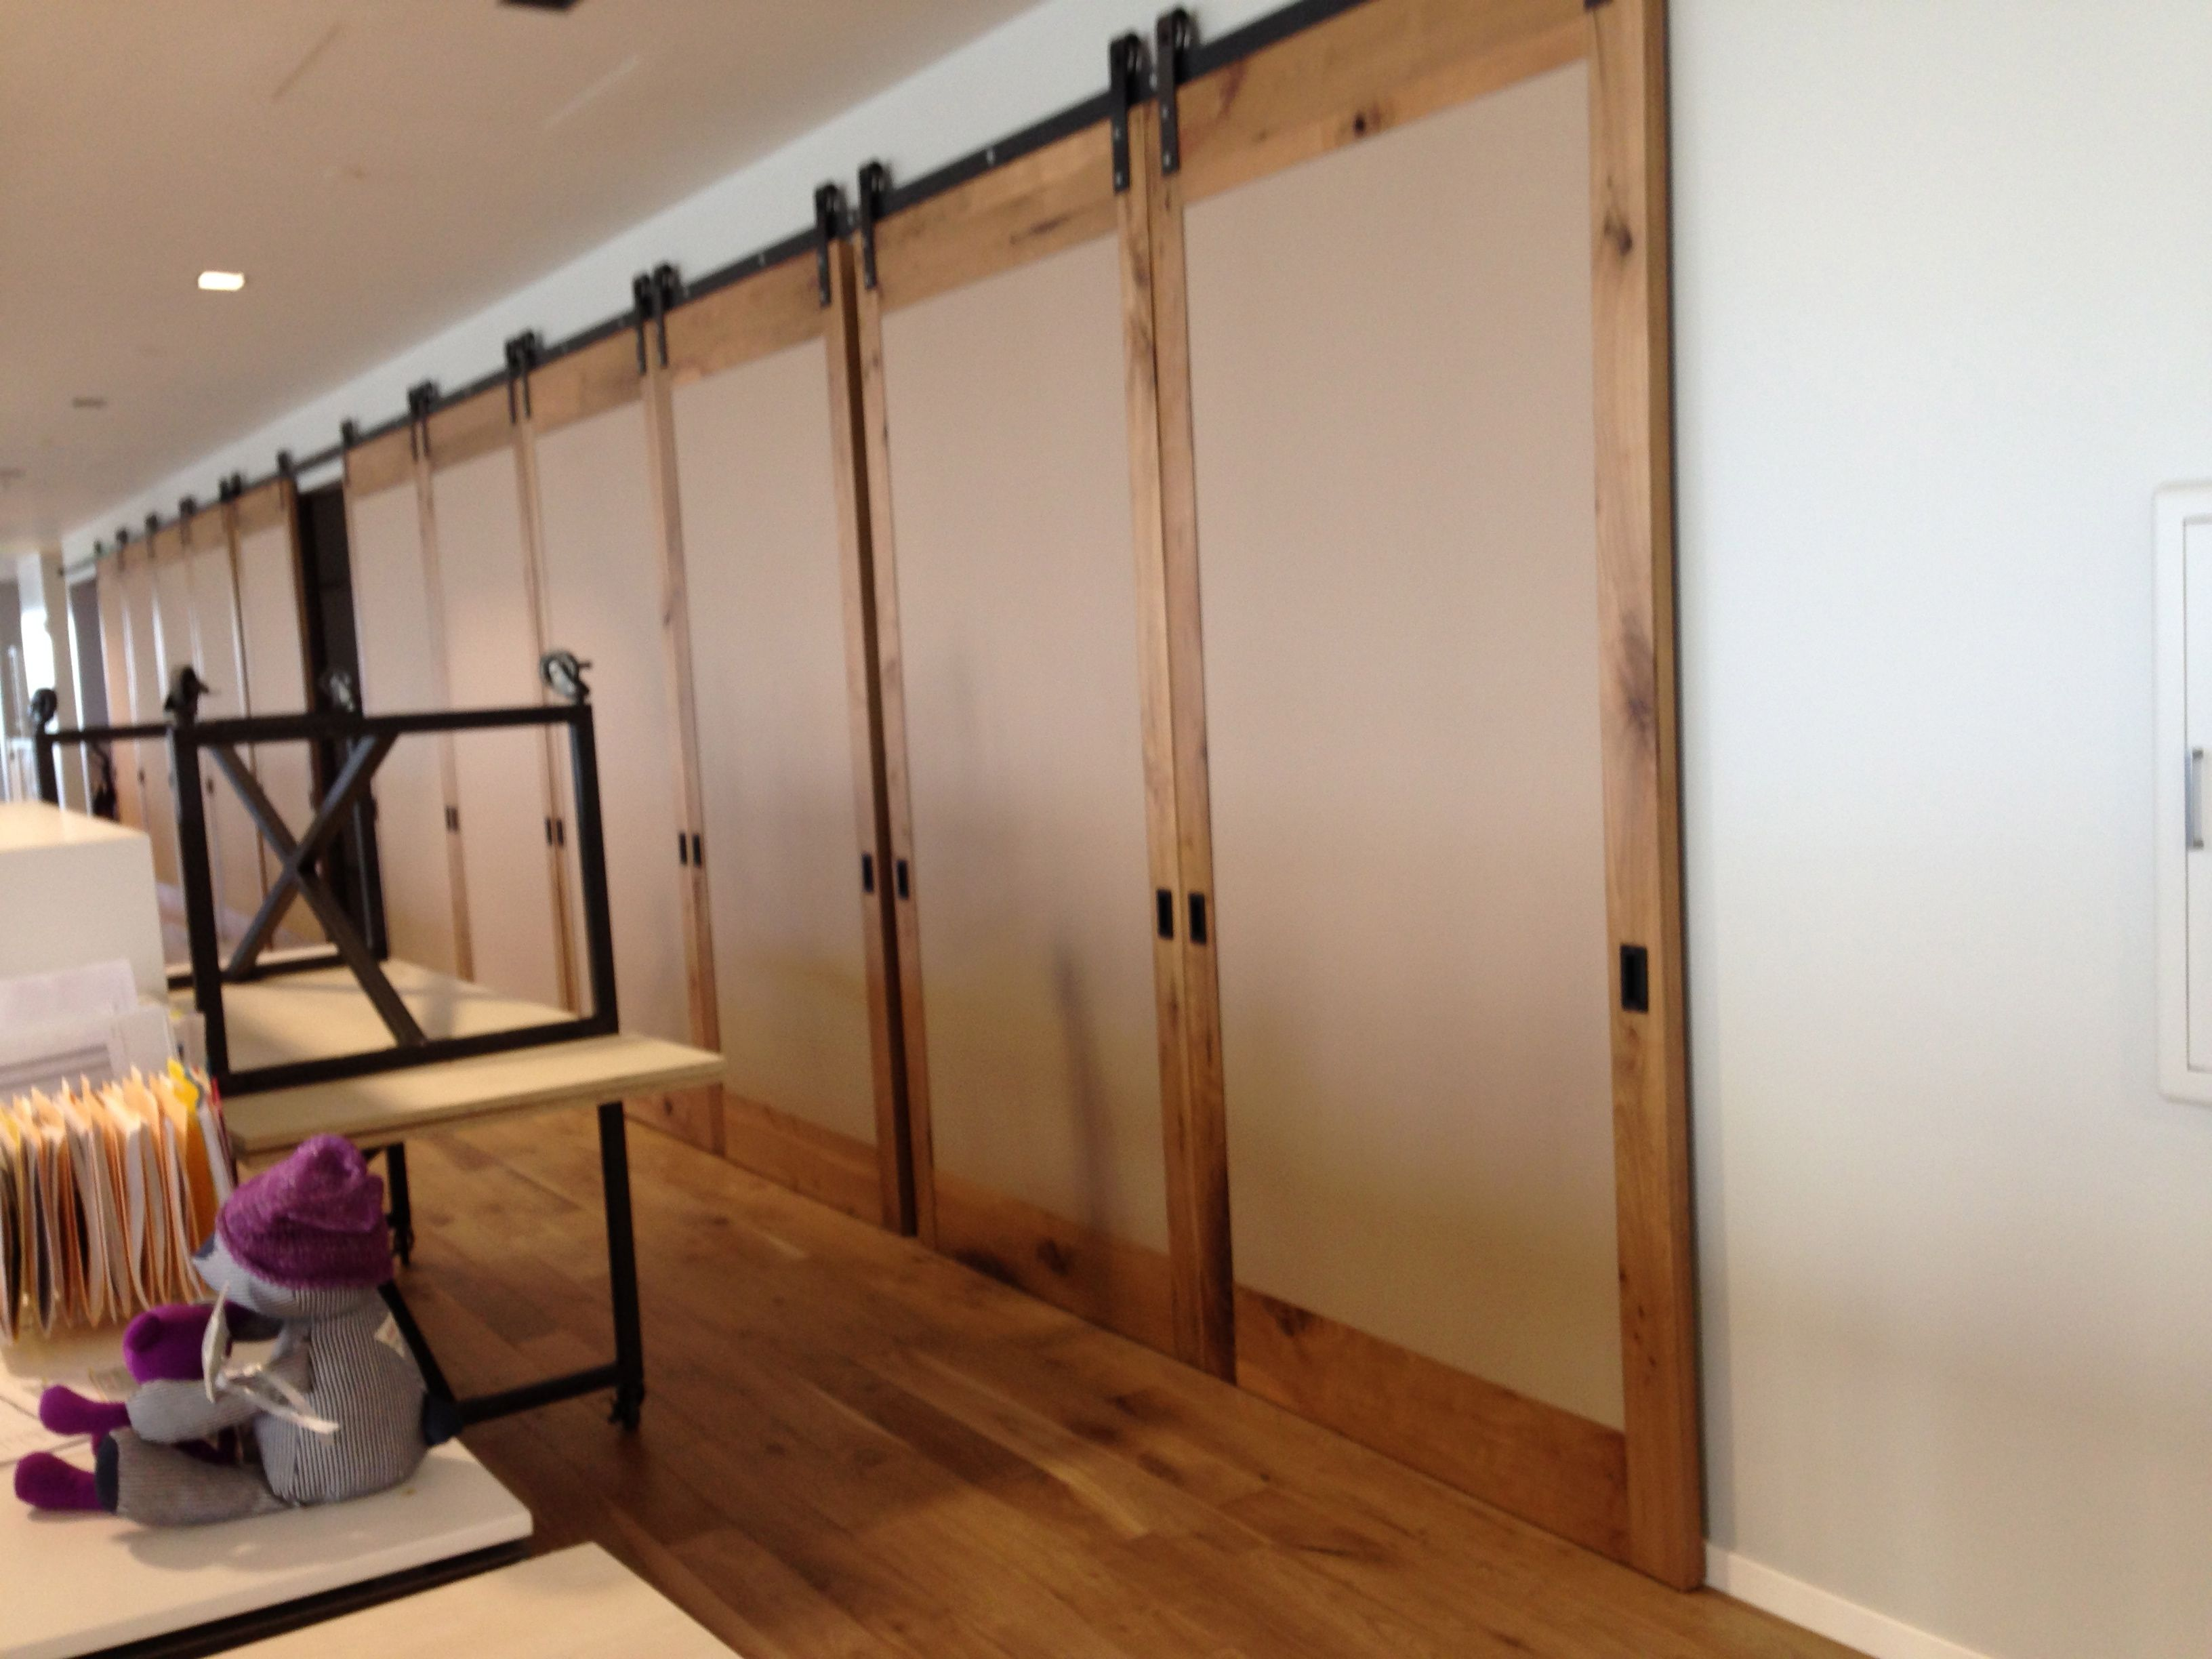 Furniture : Large Interior Room Divider Sliding Barn Door Design With Black  Metal Hardware As Well As Laminated Flooring As Well As Ceiling Lamp And  Table ...